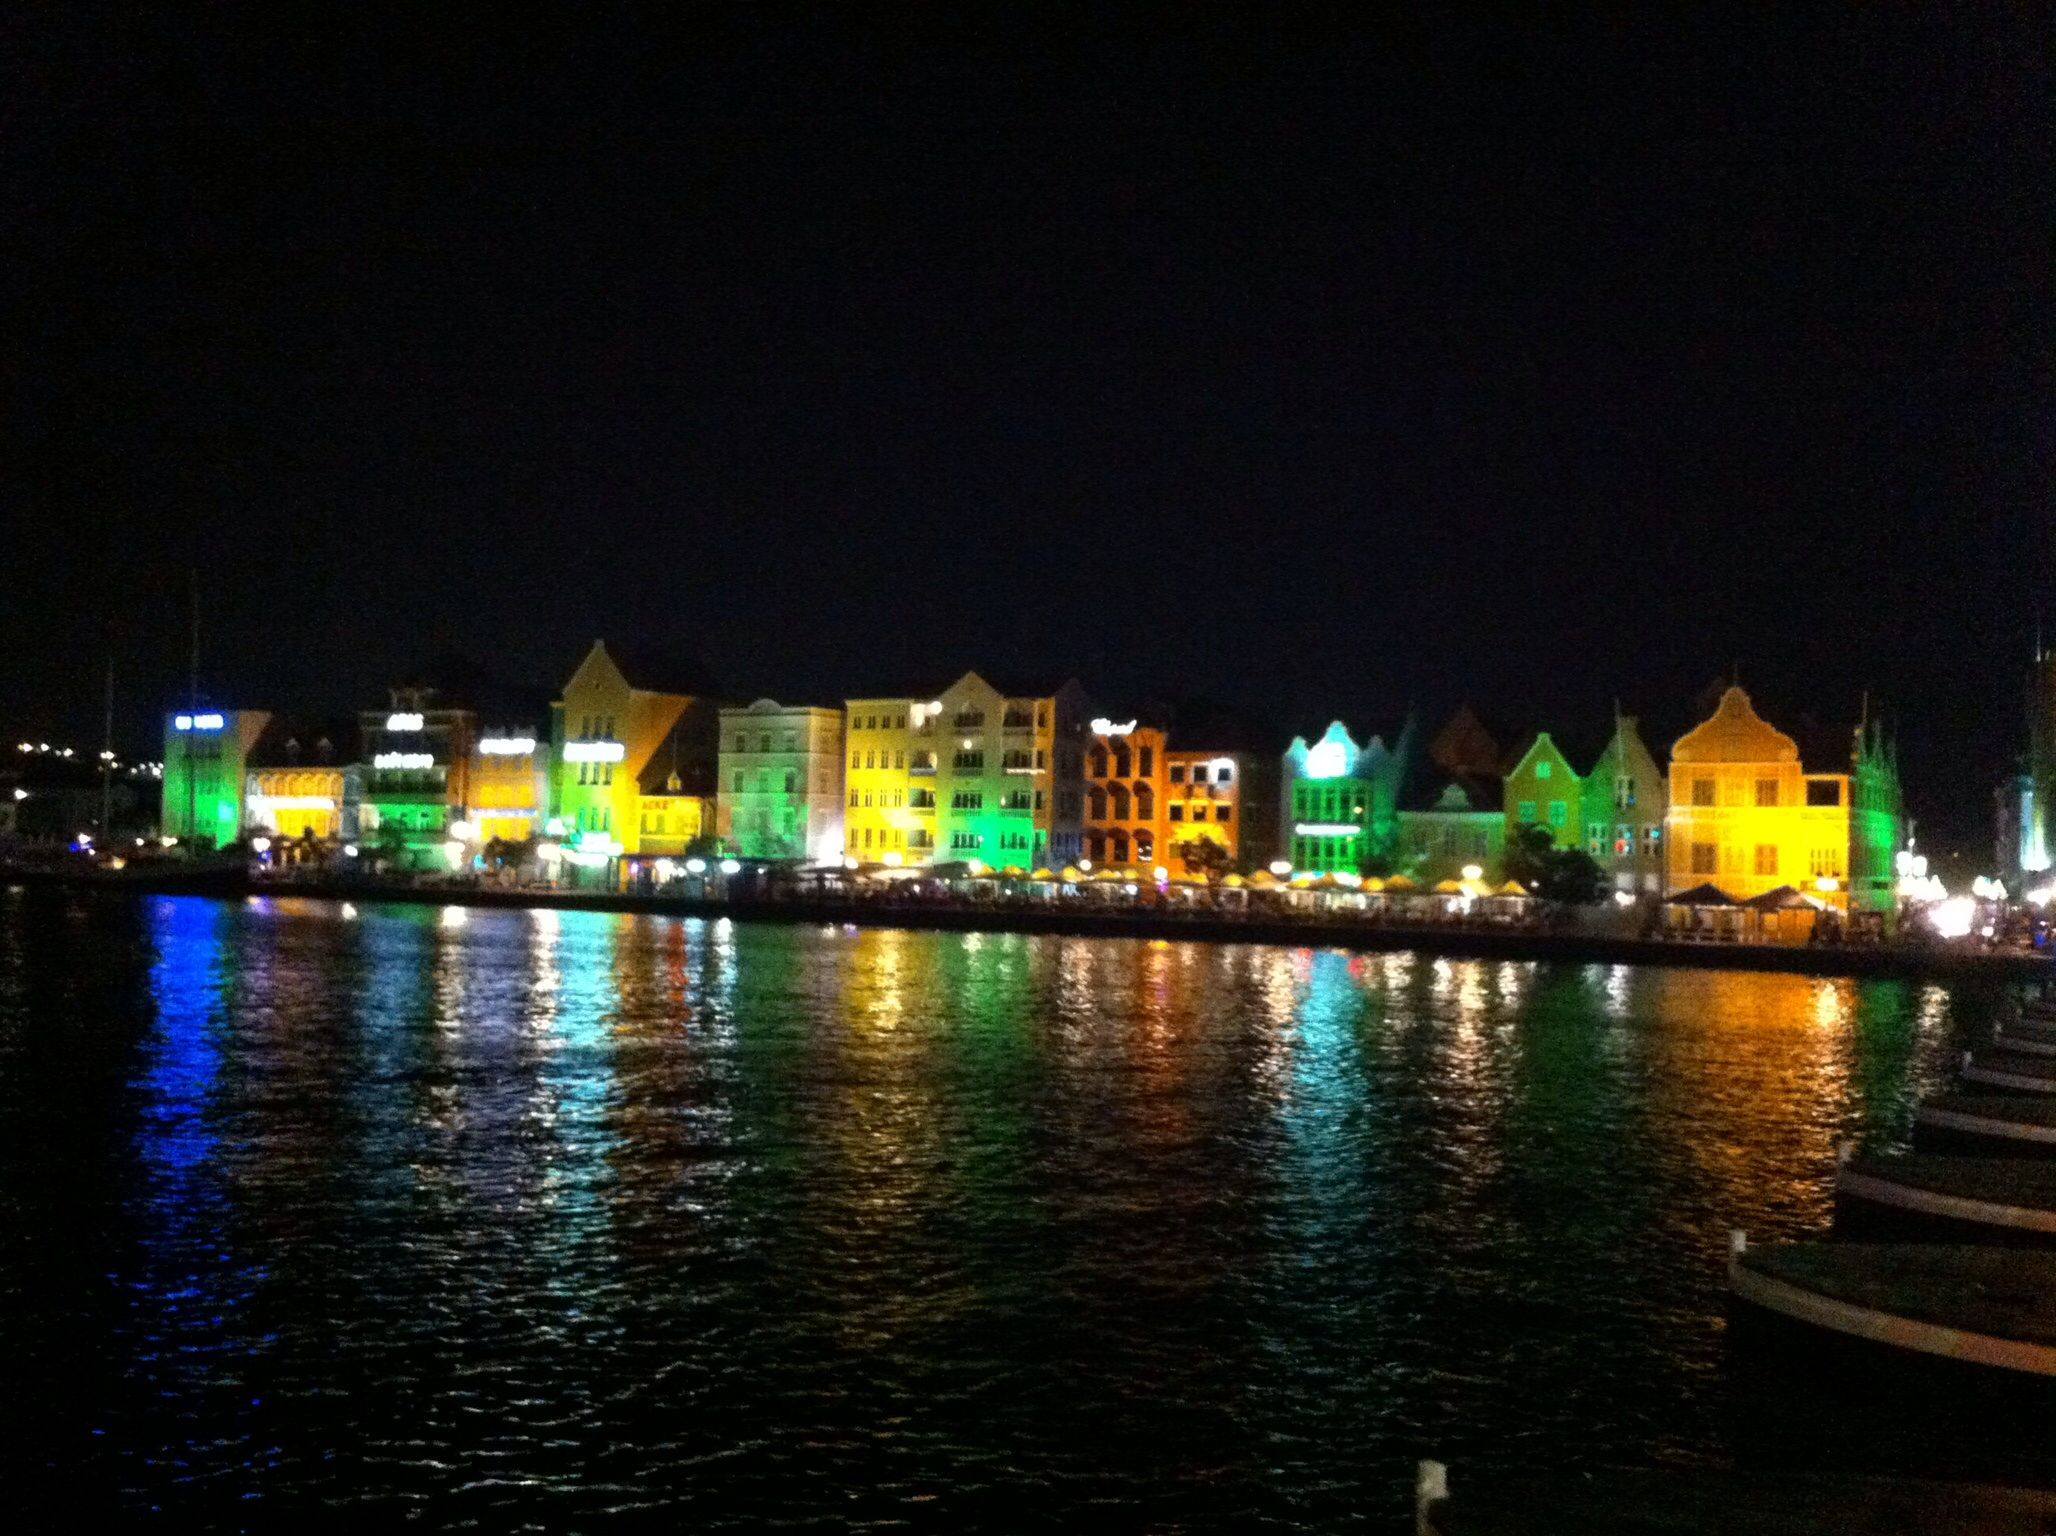 Curaçao at night.